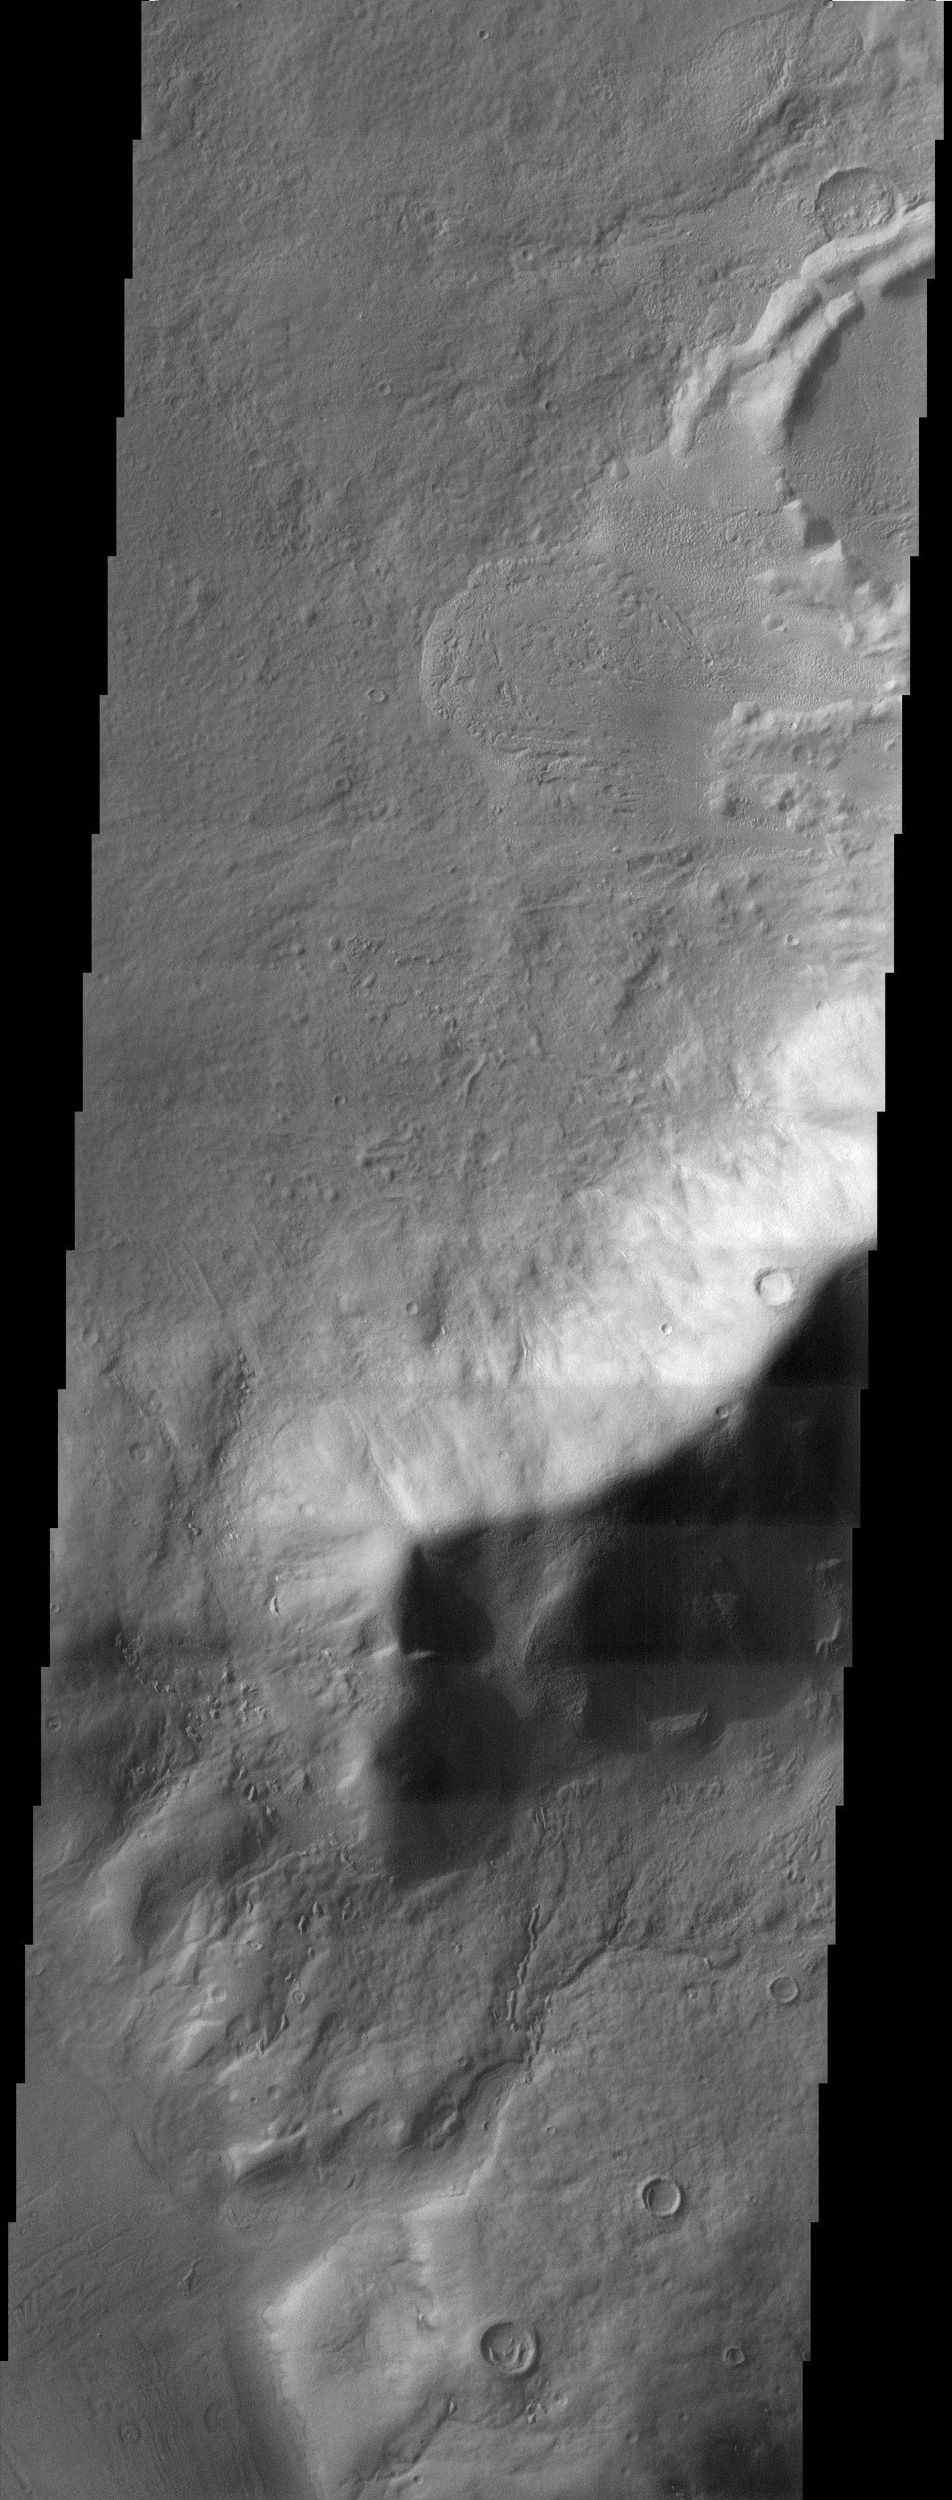 The channels and impact crater rim shown in this NASA Mars Odyssey image provide insight to the forces that have sculpted the surface within the extensive Reull Vallis network.